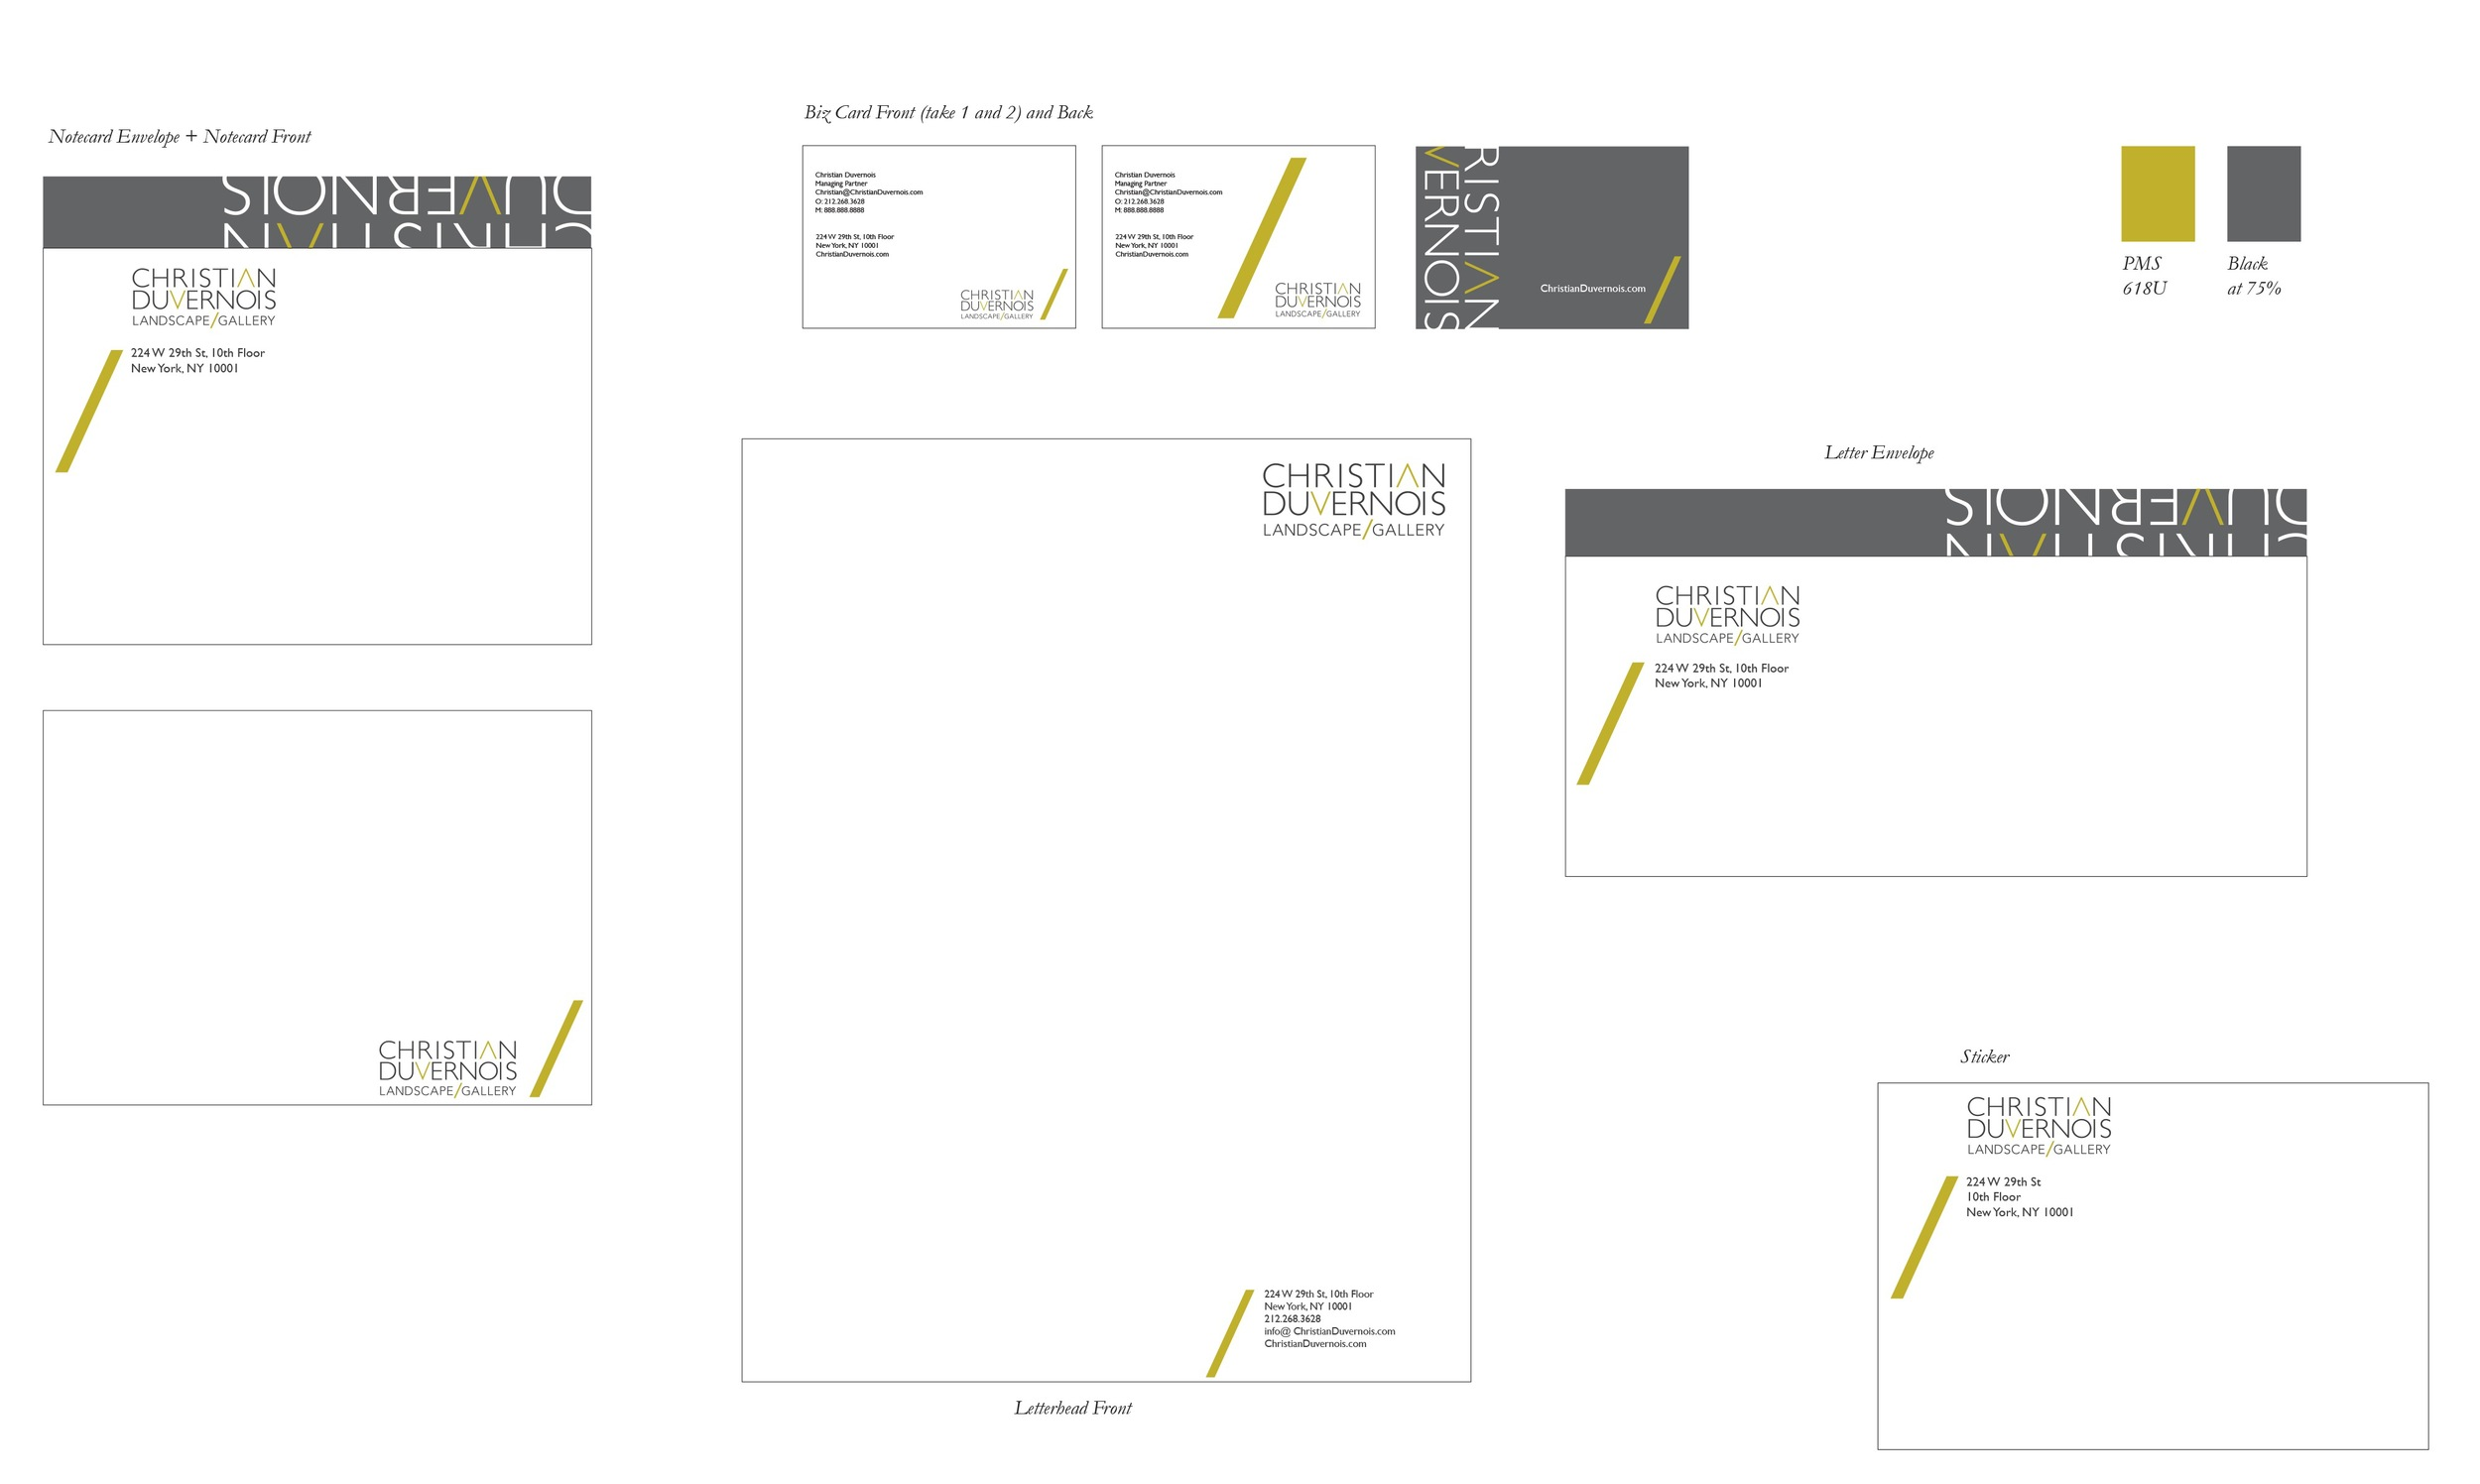 Christian_Duvernois_Stationery_Presentation-Revised_CONCEPT-Select.jpg